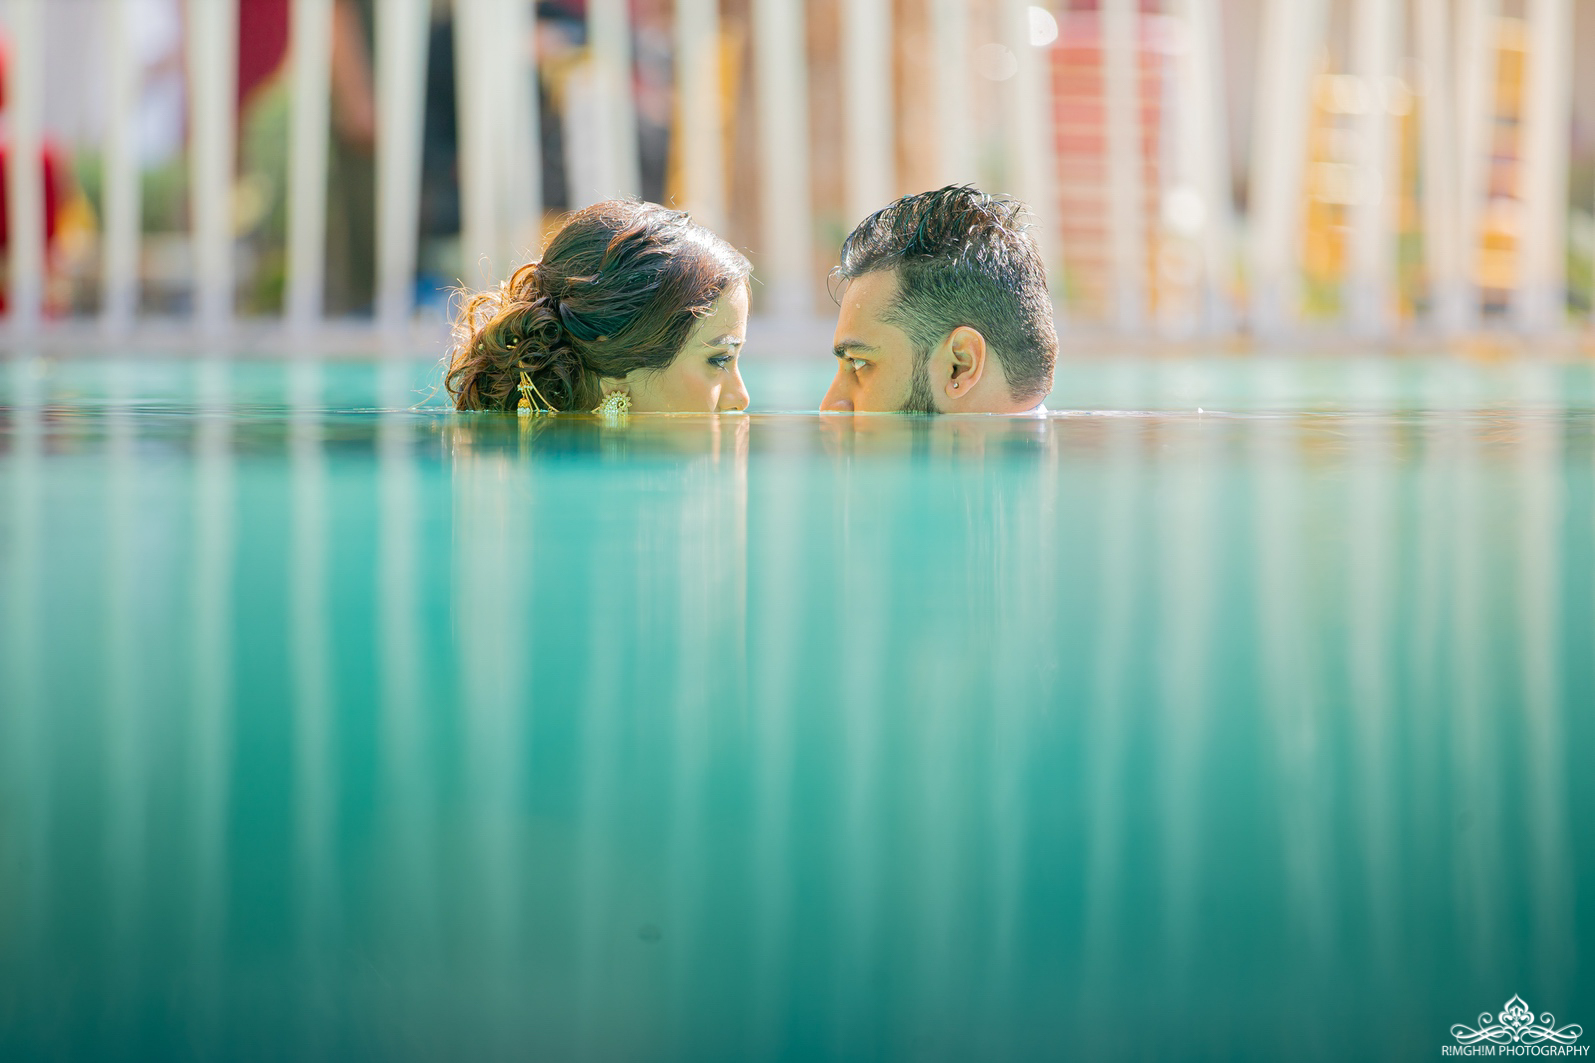 Beautiful Images of Bride and Groom in Pool